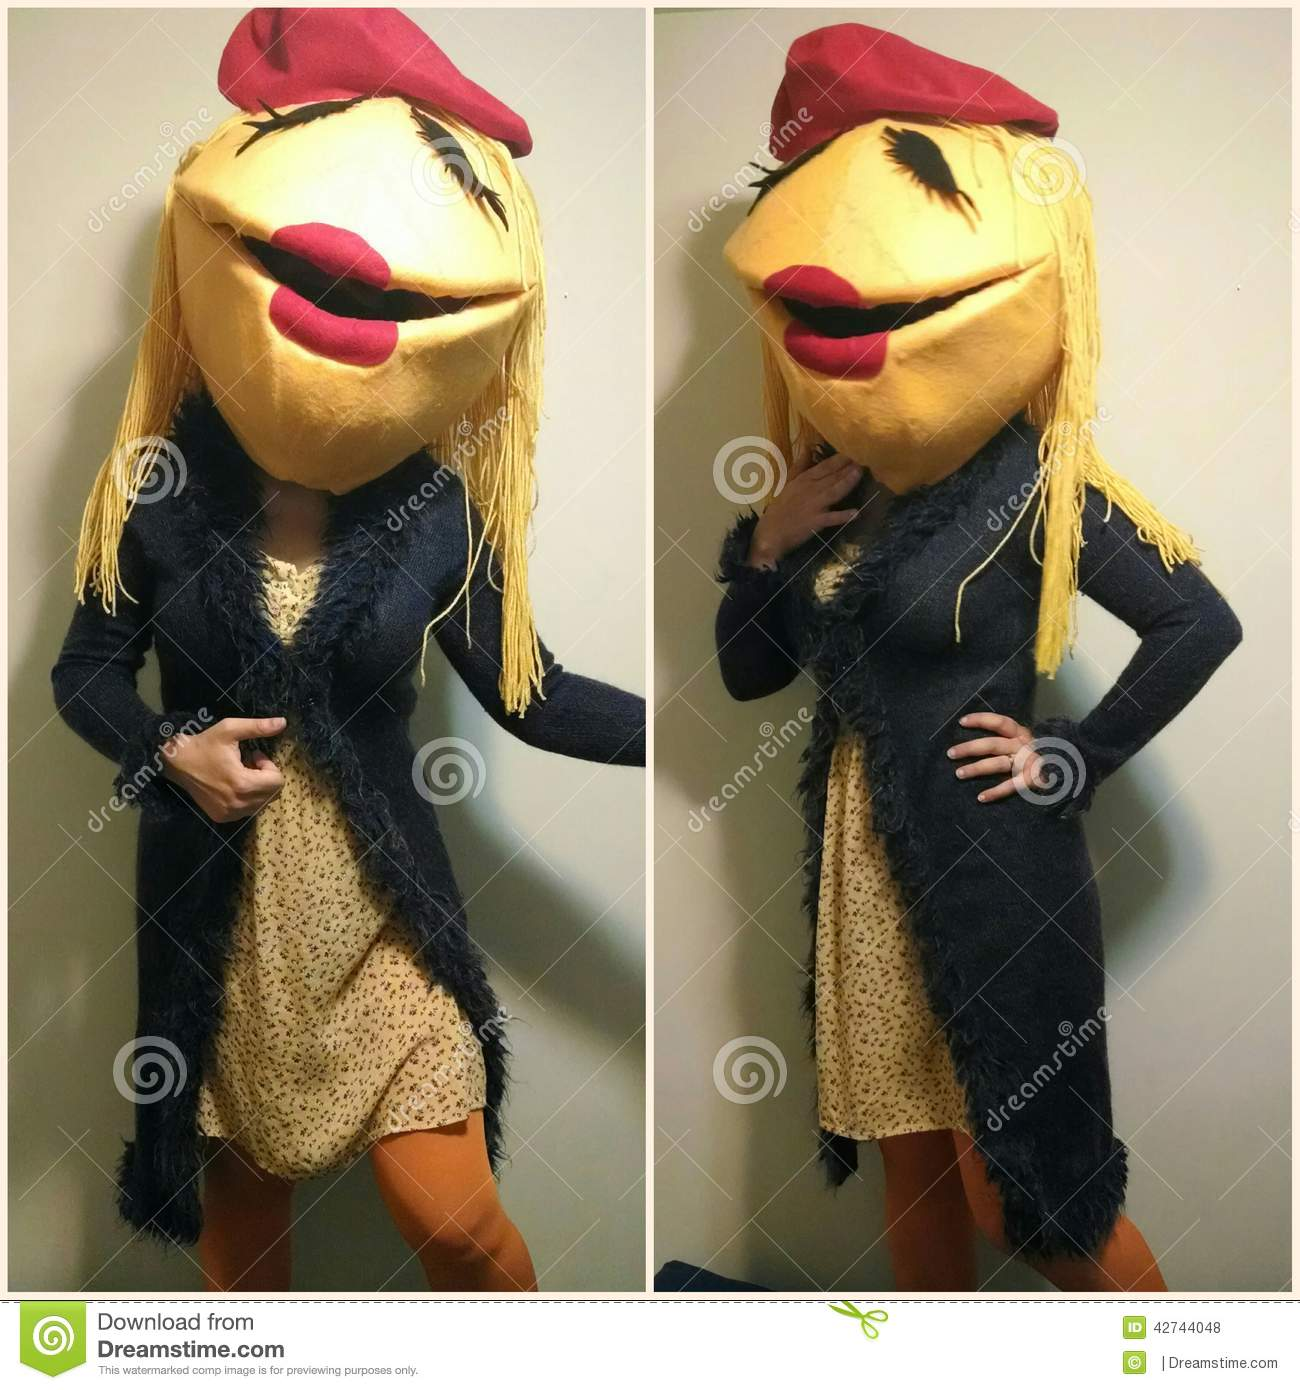 Janice Muppet costume editorial stock photo  Image of giant - 42744048